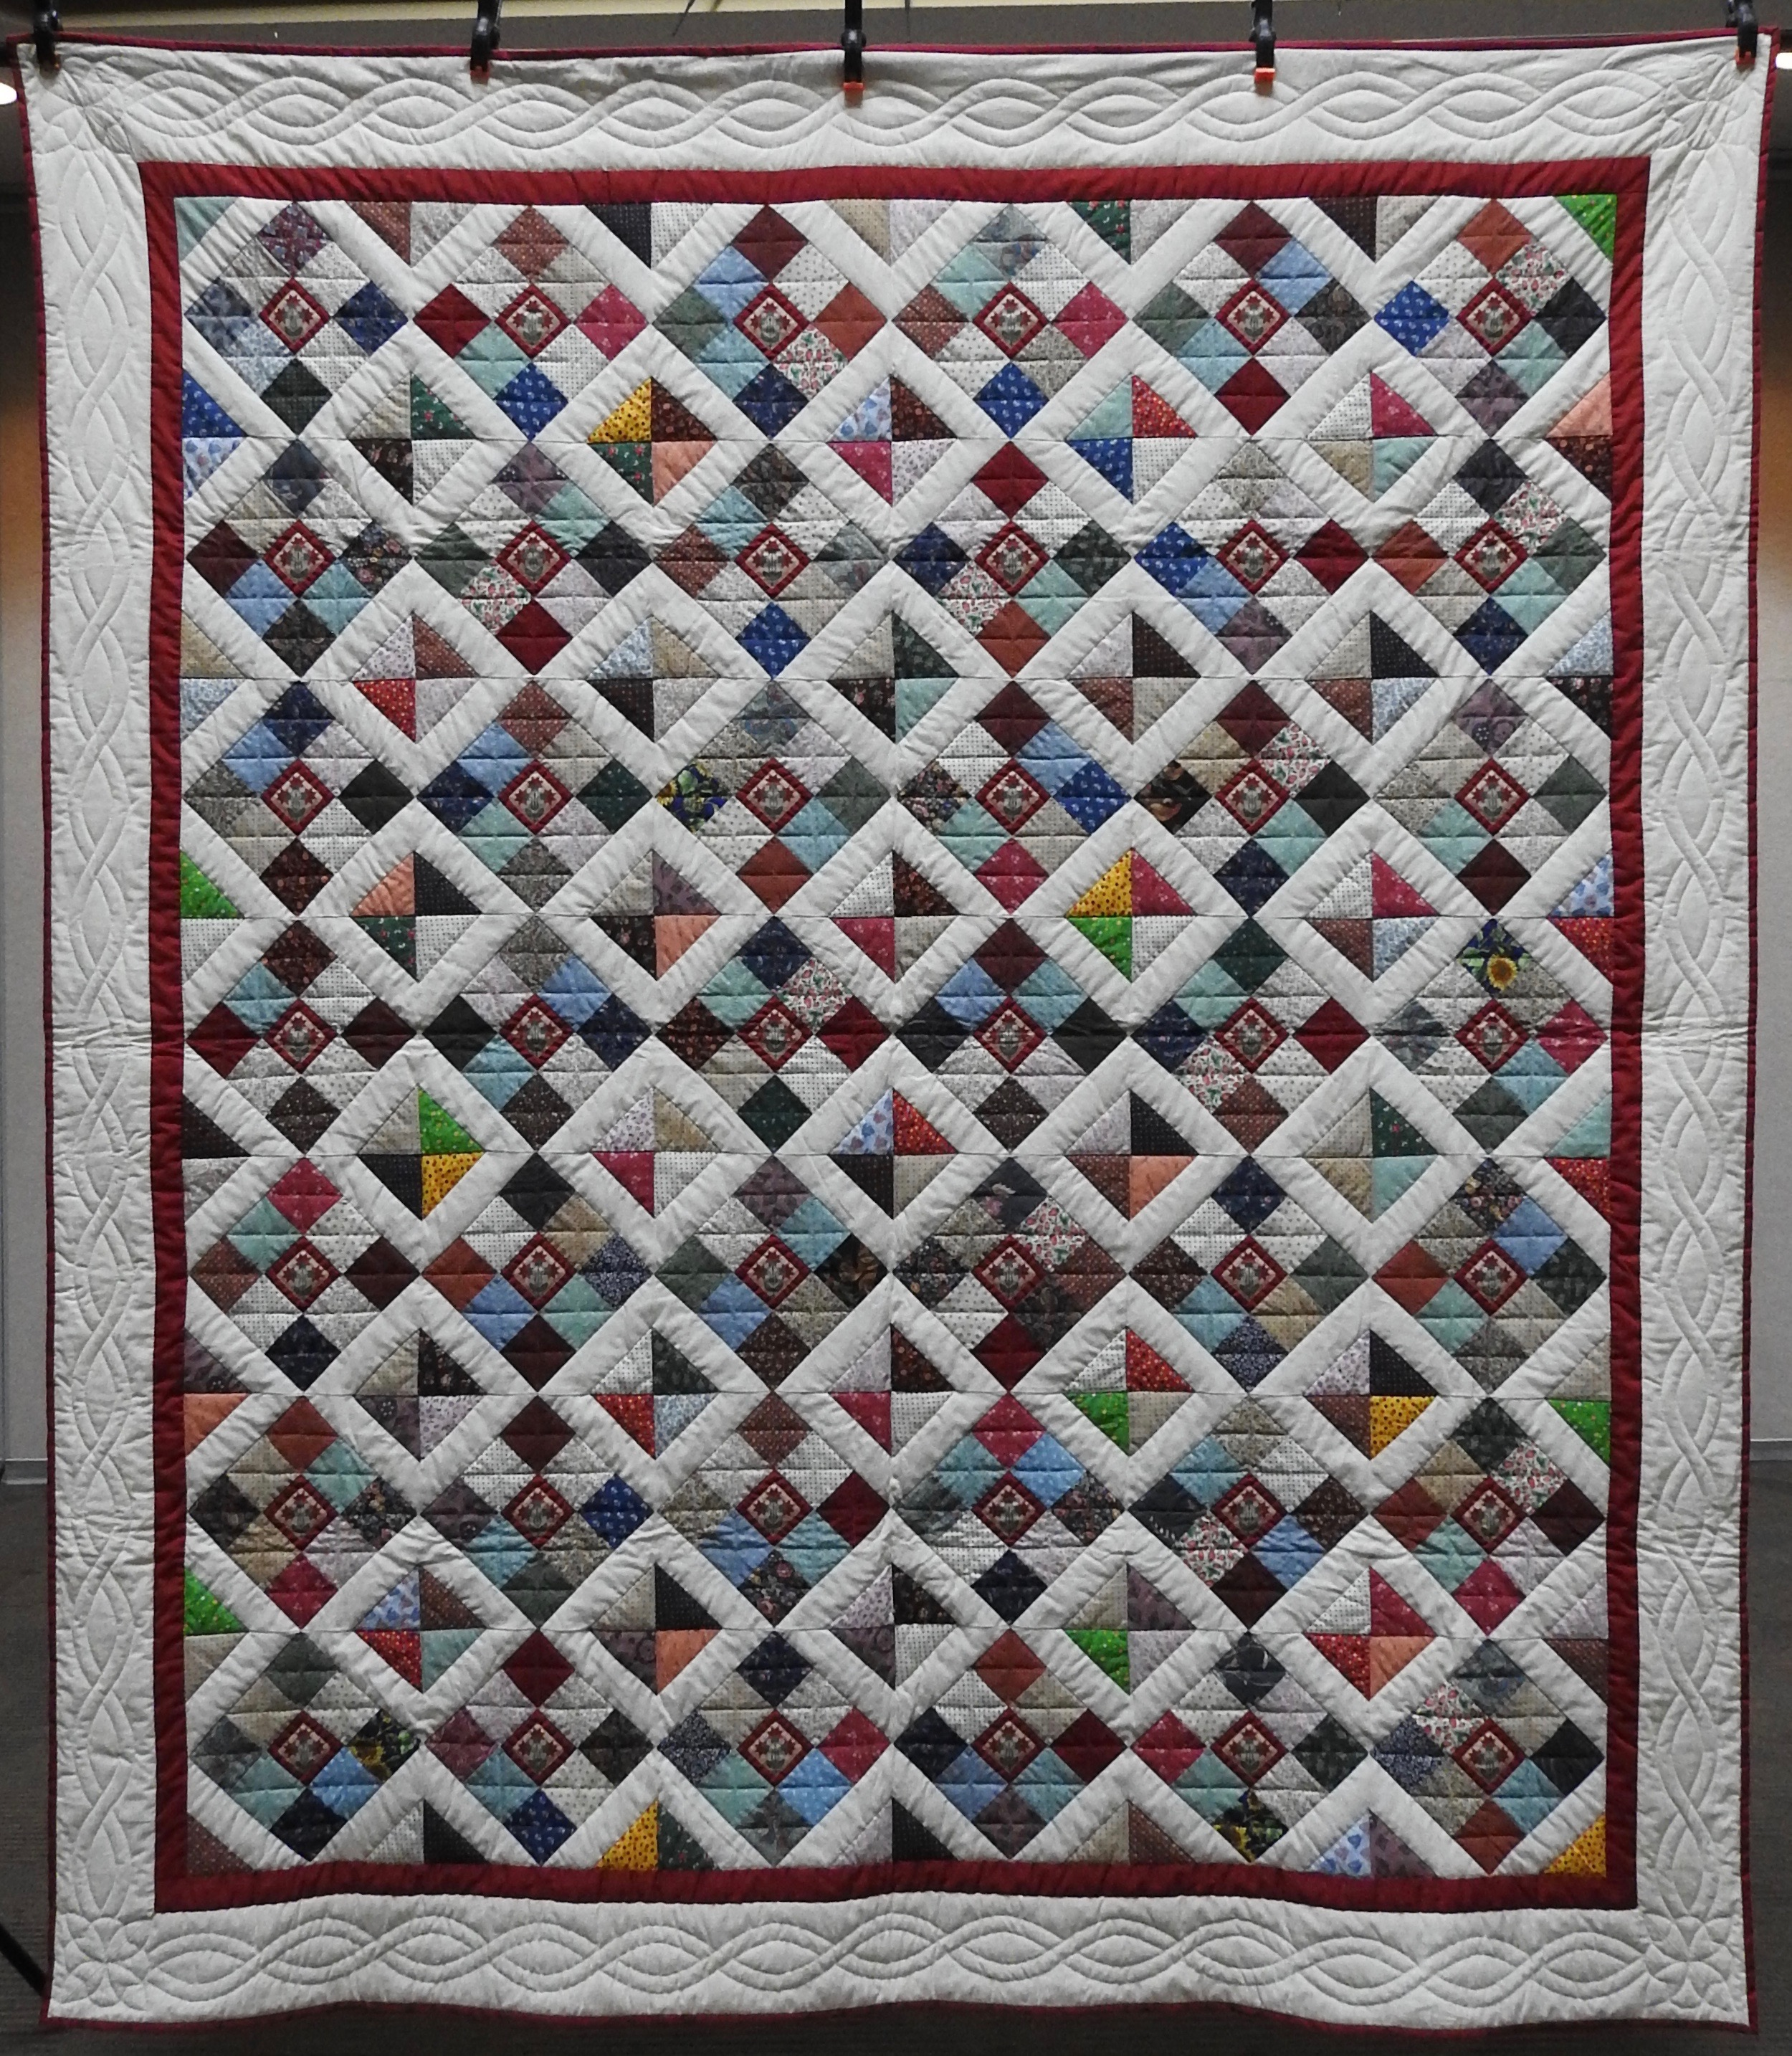 Variable Nine Patch, Pieced & Hand Quilted by Isabel Leipprandt, Signed & Dated, donated by Wayne & Karen Moss, 77 x 88""